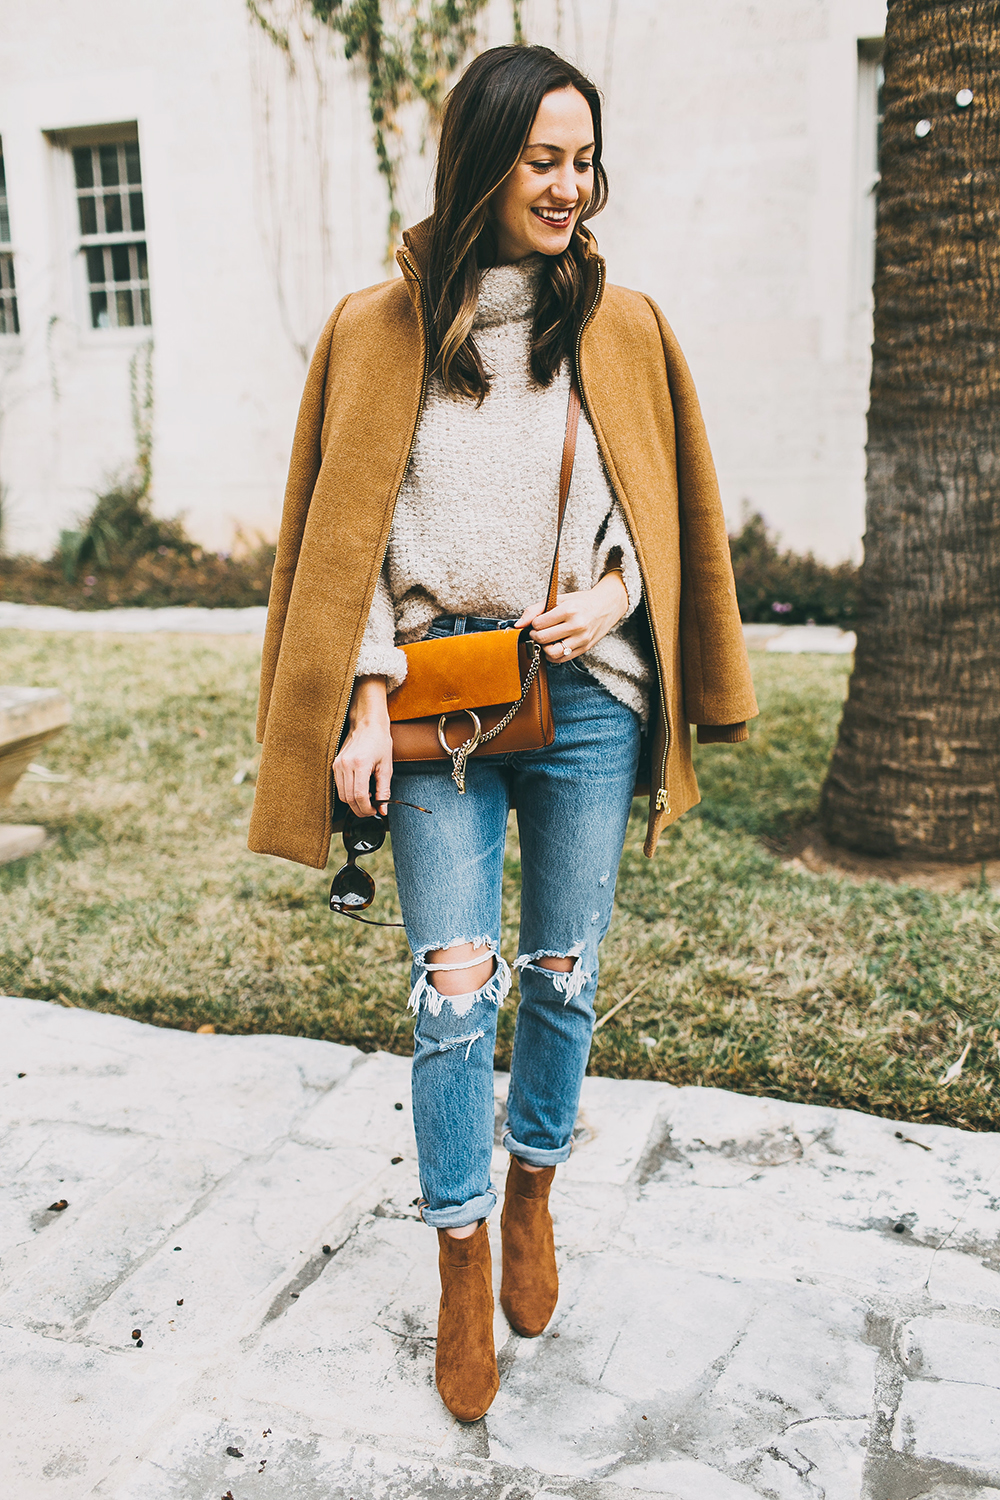 livvyland-blog-olivia-watson-austin-texas-fashion-style-blogger-free-people-oatmeal-knit-sweater-j-crew-camel-coat-chloe-faye-tobacco-handbag-3